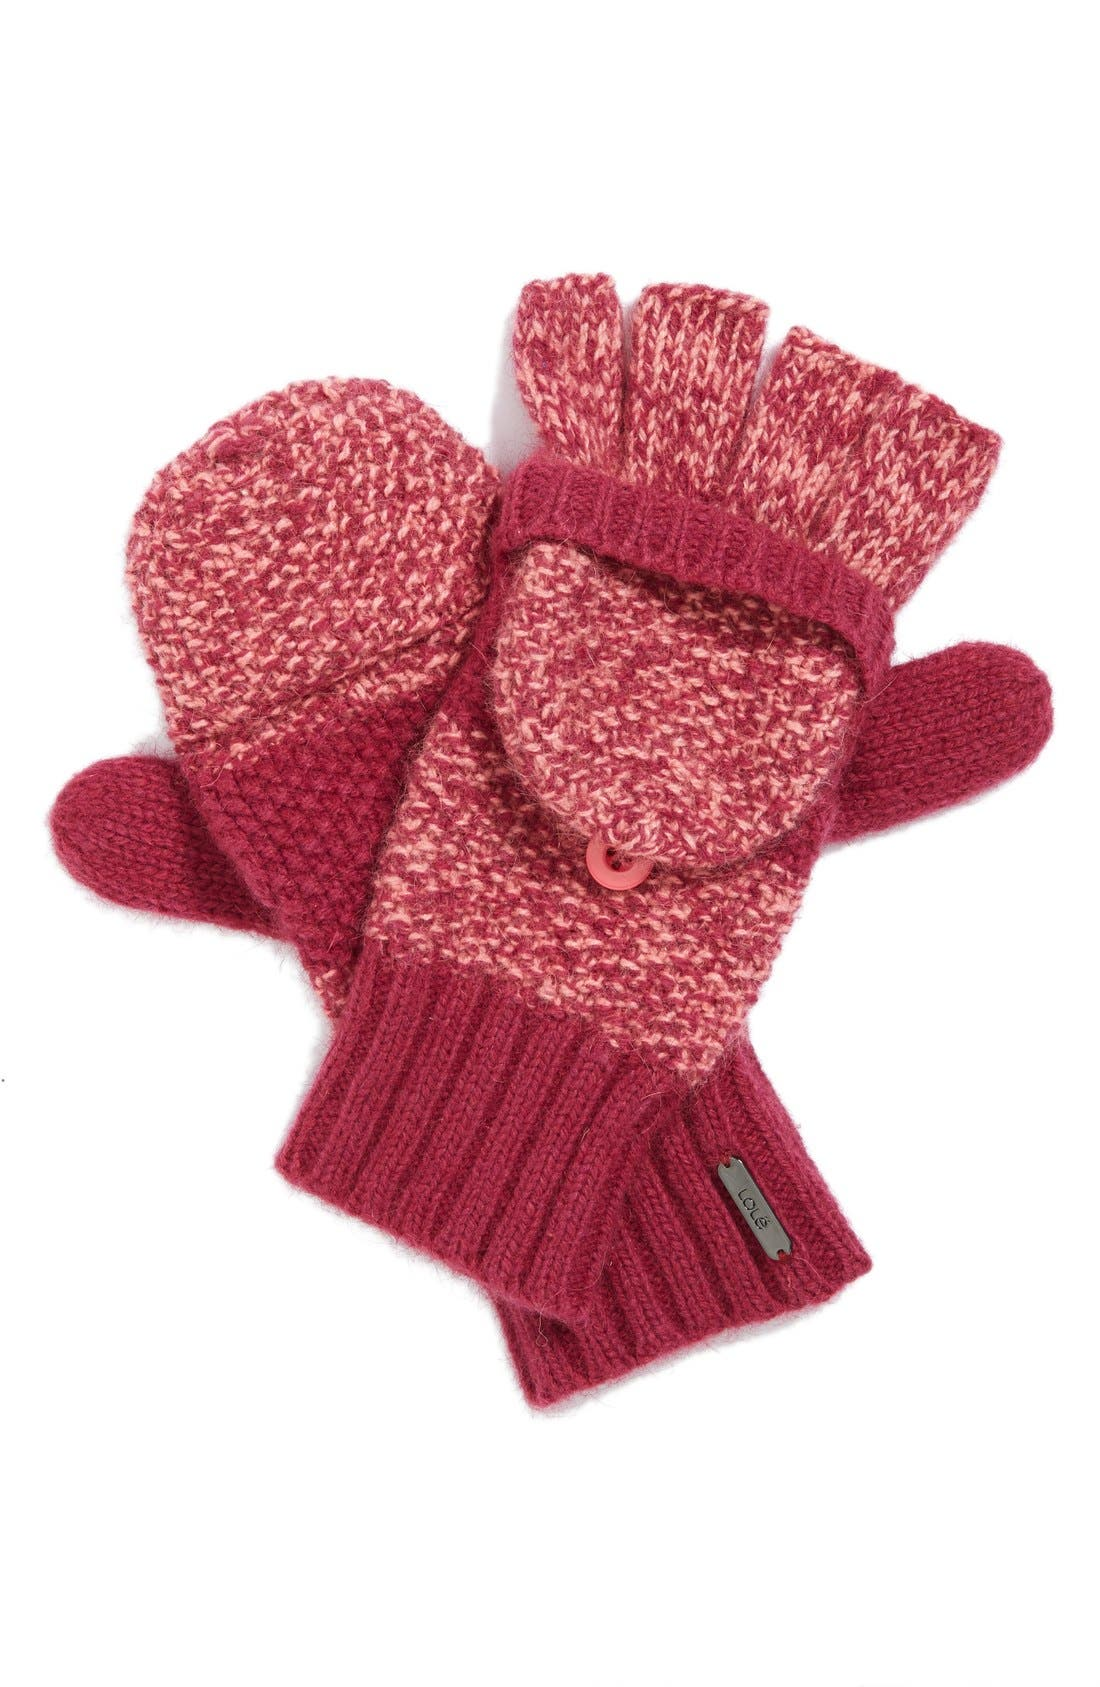 Alternate Image 1 Selected - Lole Convertible Mittens